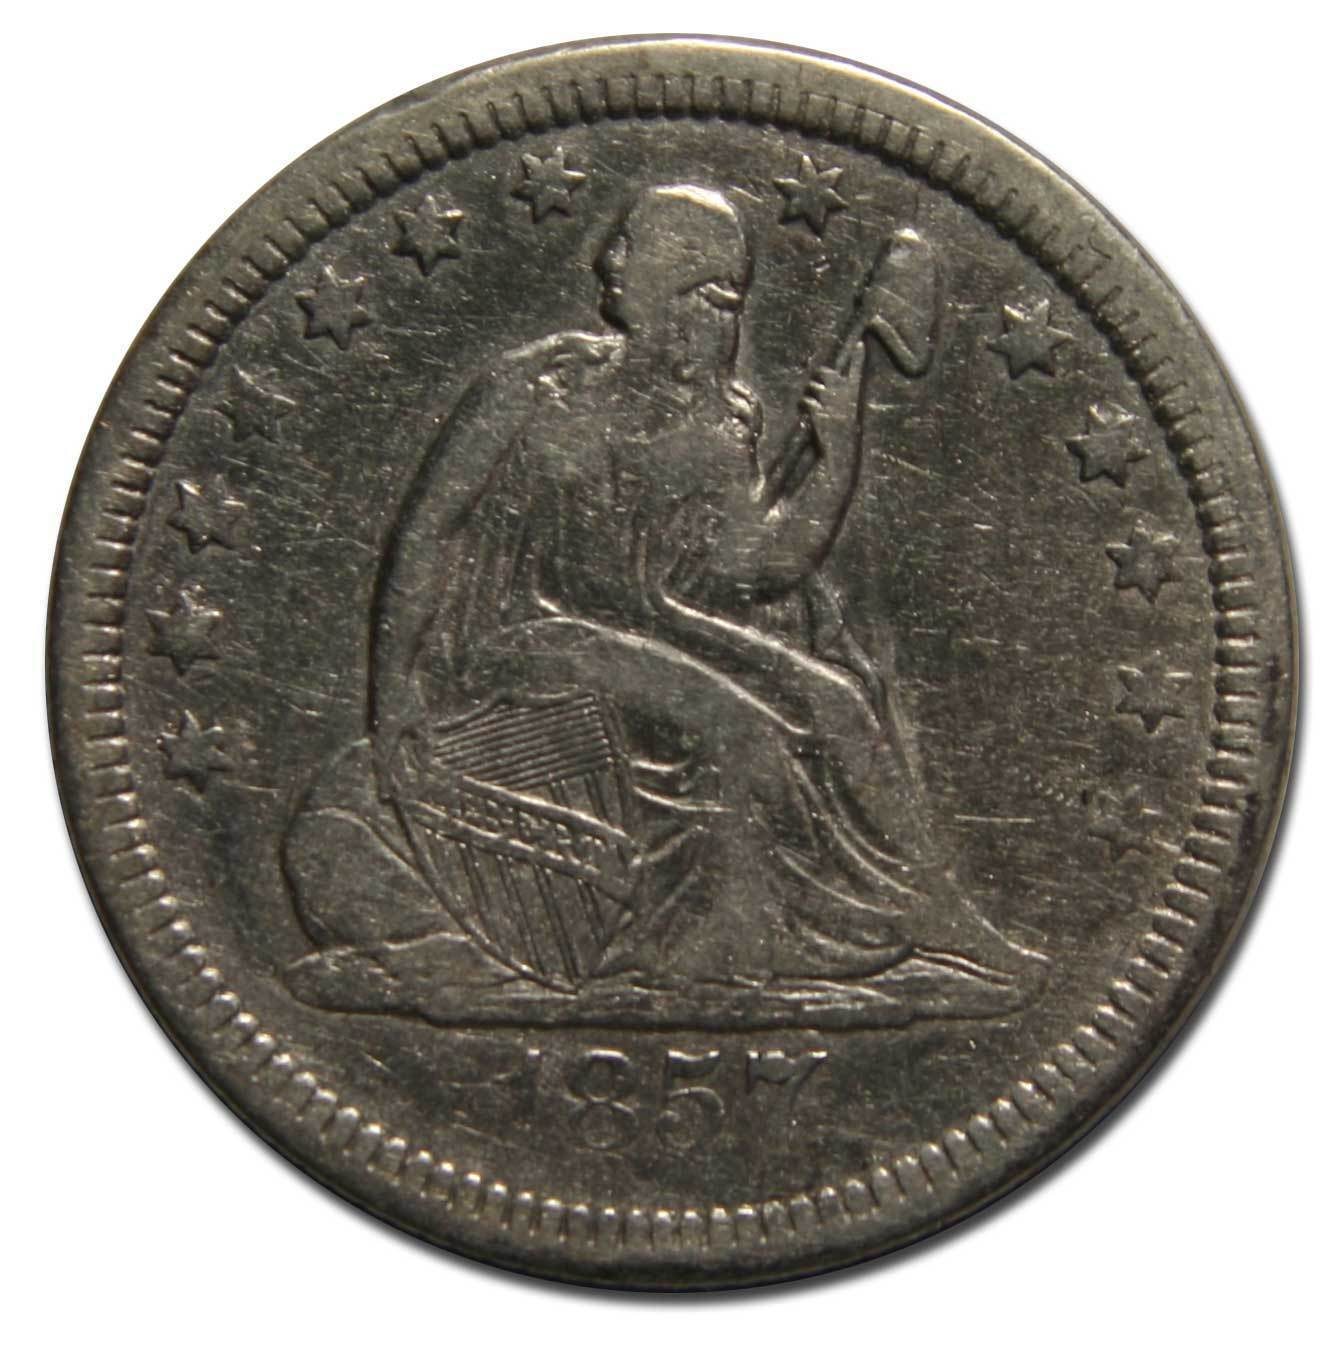 1857 Seated Liberty Quarter Coin Lot# A 1844